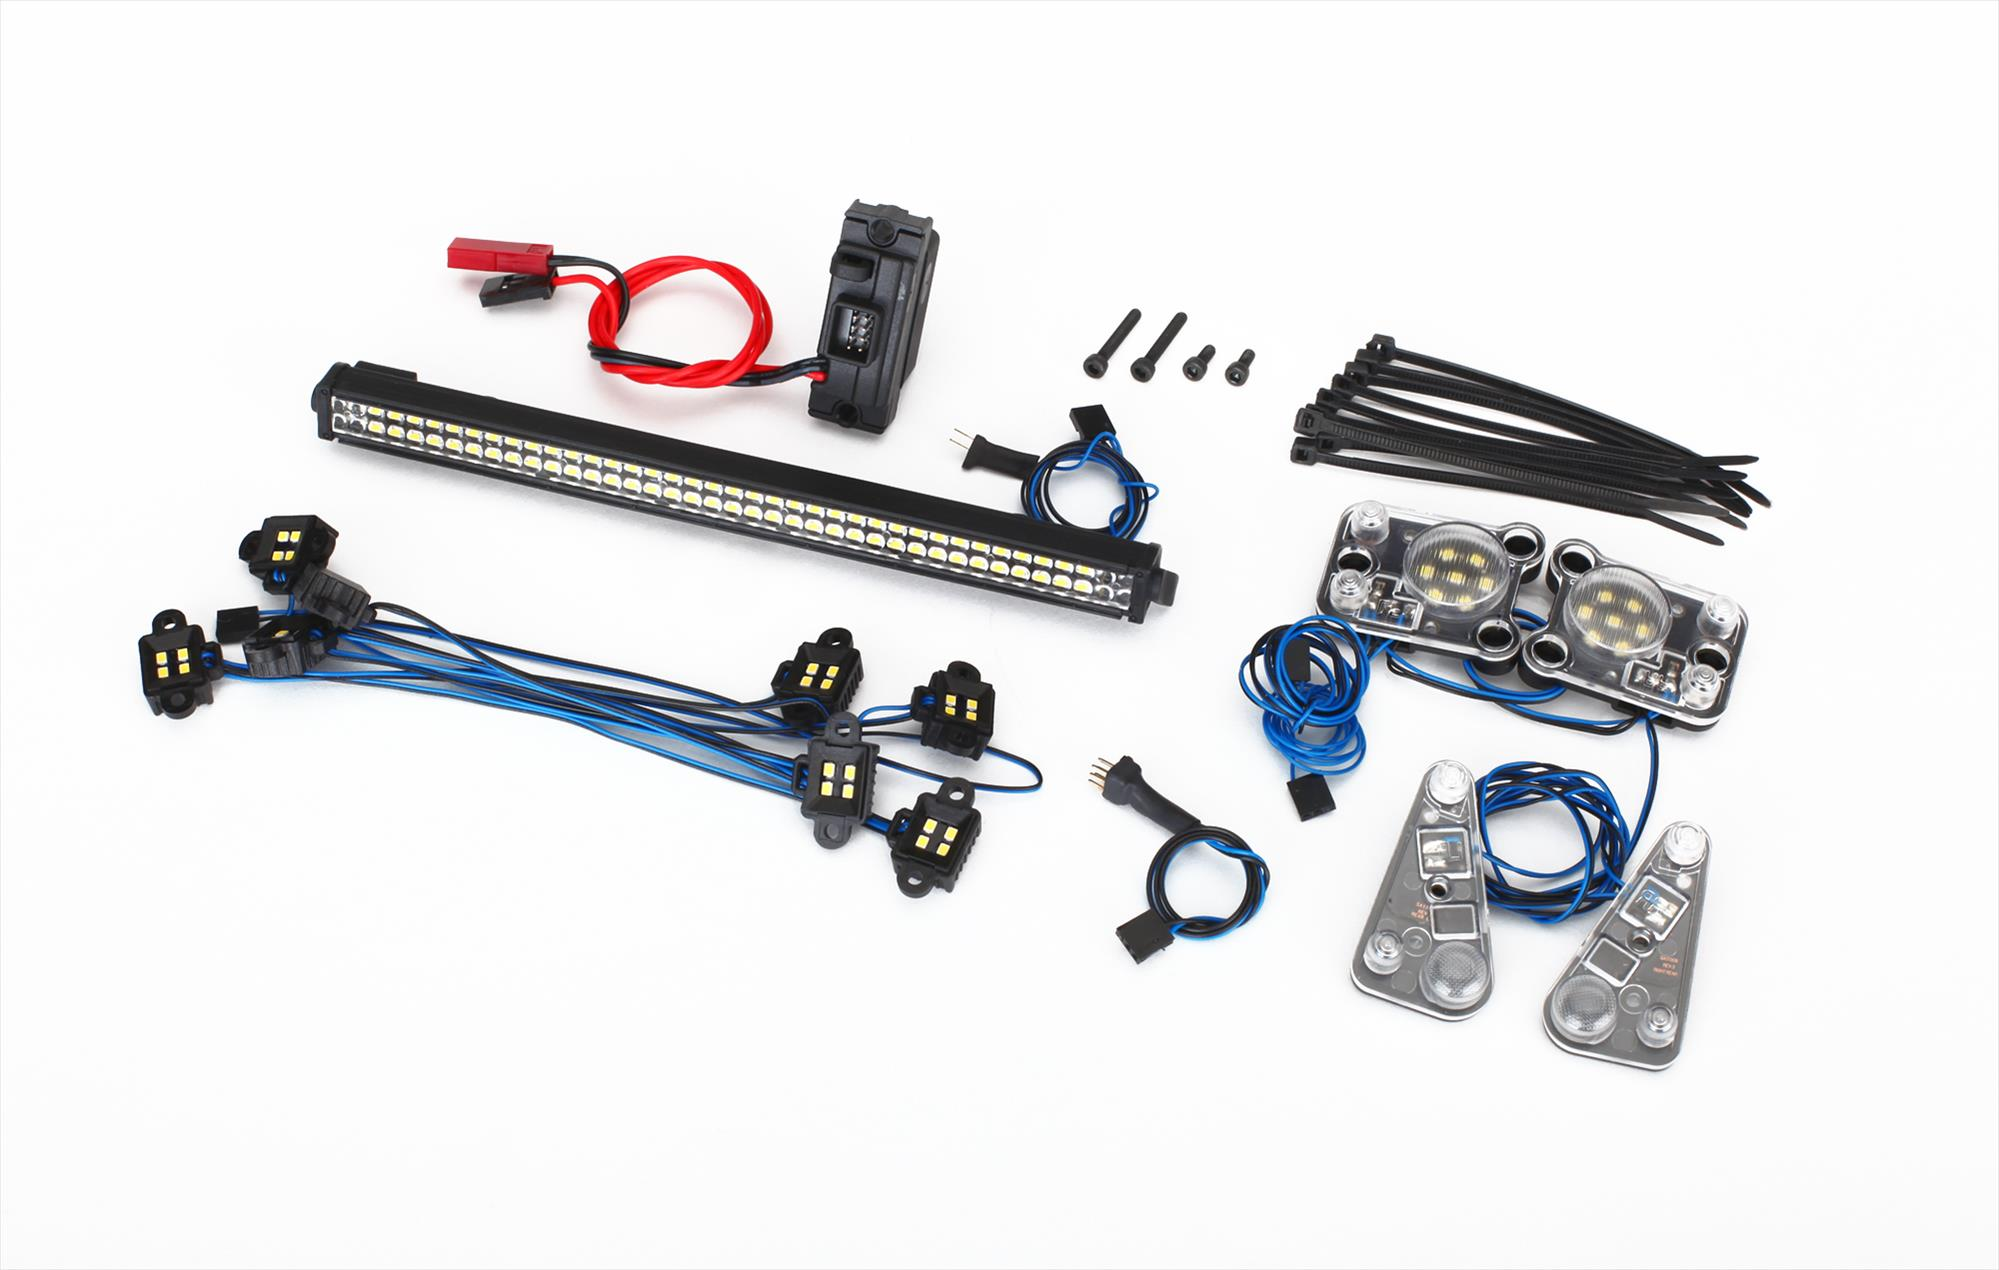 Traxxas TRX-4 LED Light Kit 8030 Land Rover